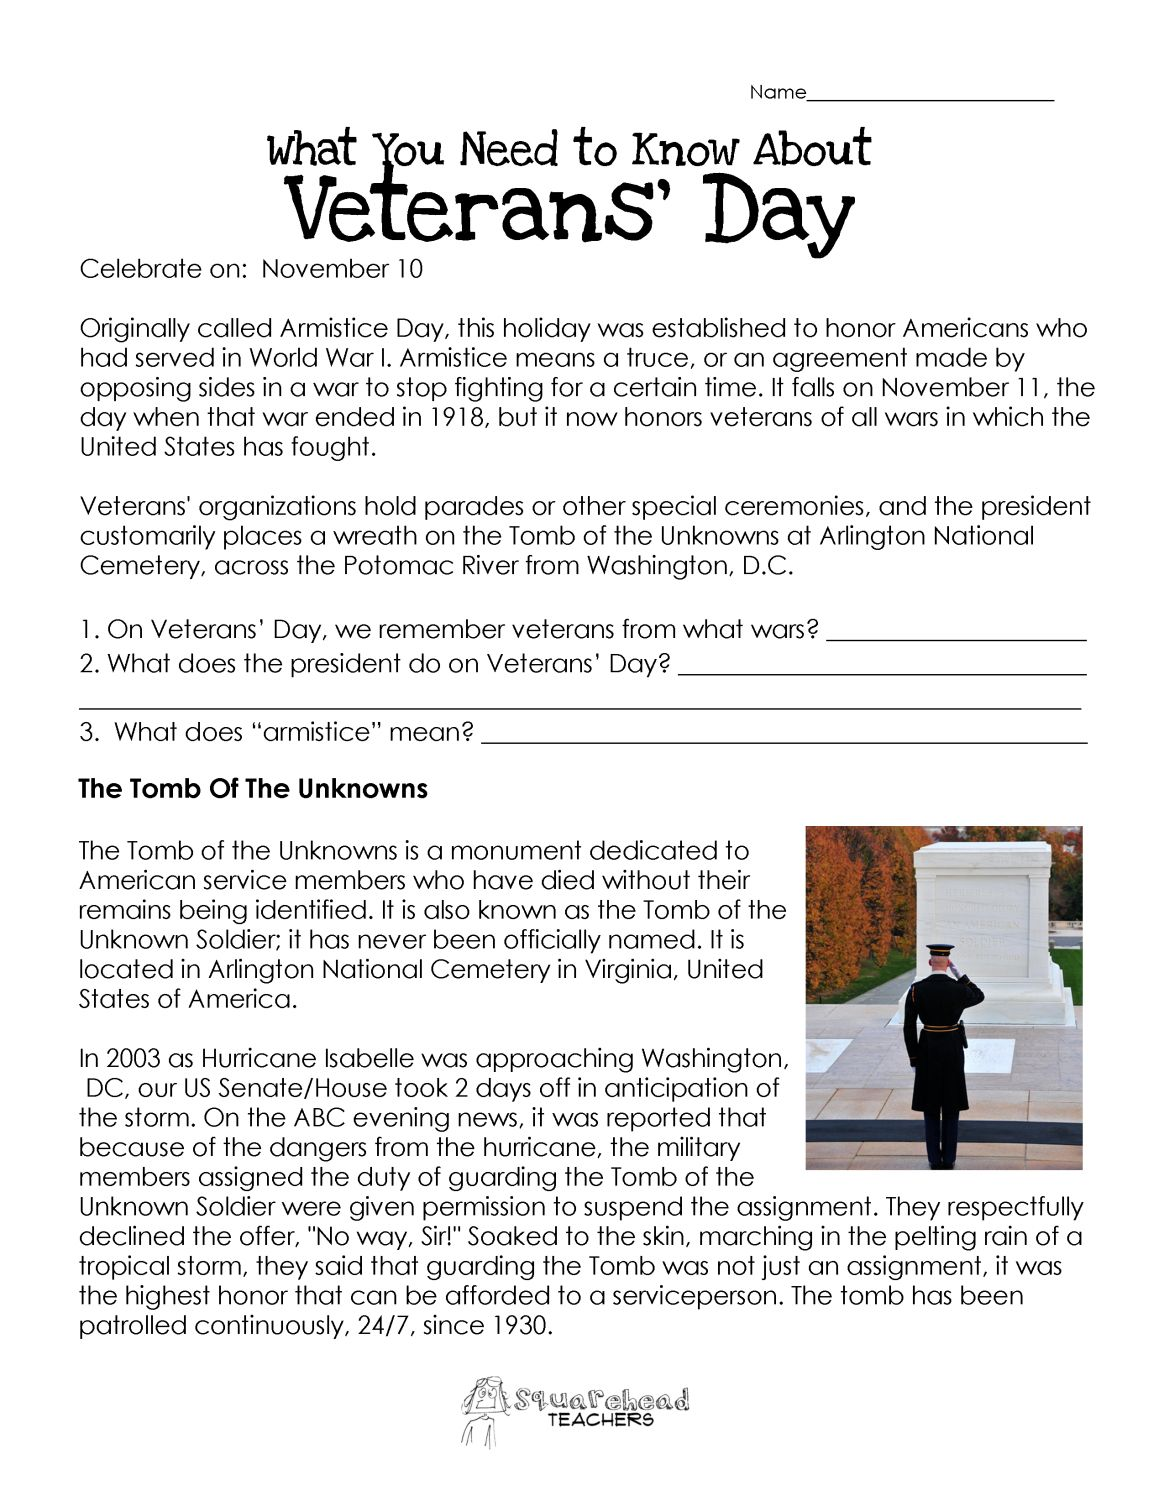 worksheet Reading Comprehension Worksheets Middle School veterans day worksheet sticker classroom helpers pinterest heres what every kid should know about and the tomb of unknown soldier this is probably an upper grade worksheet